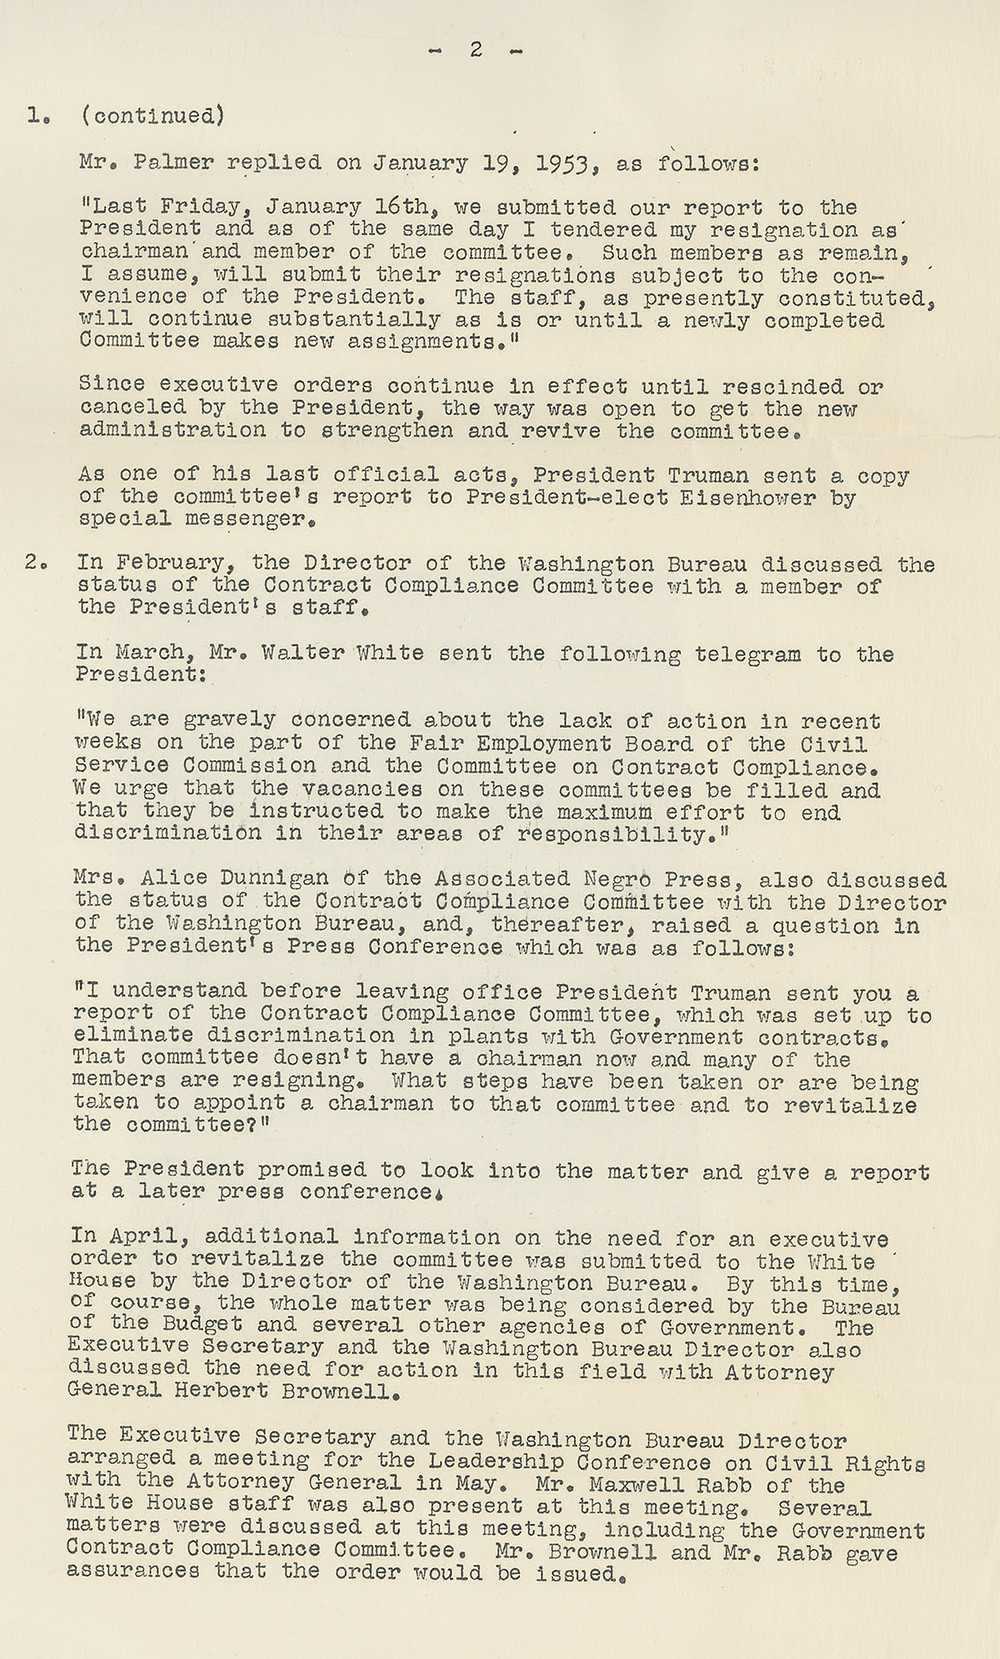 NAACP letter detailing the call for action against discrimination by government contractors